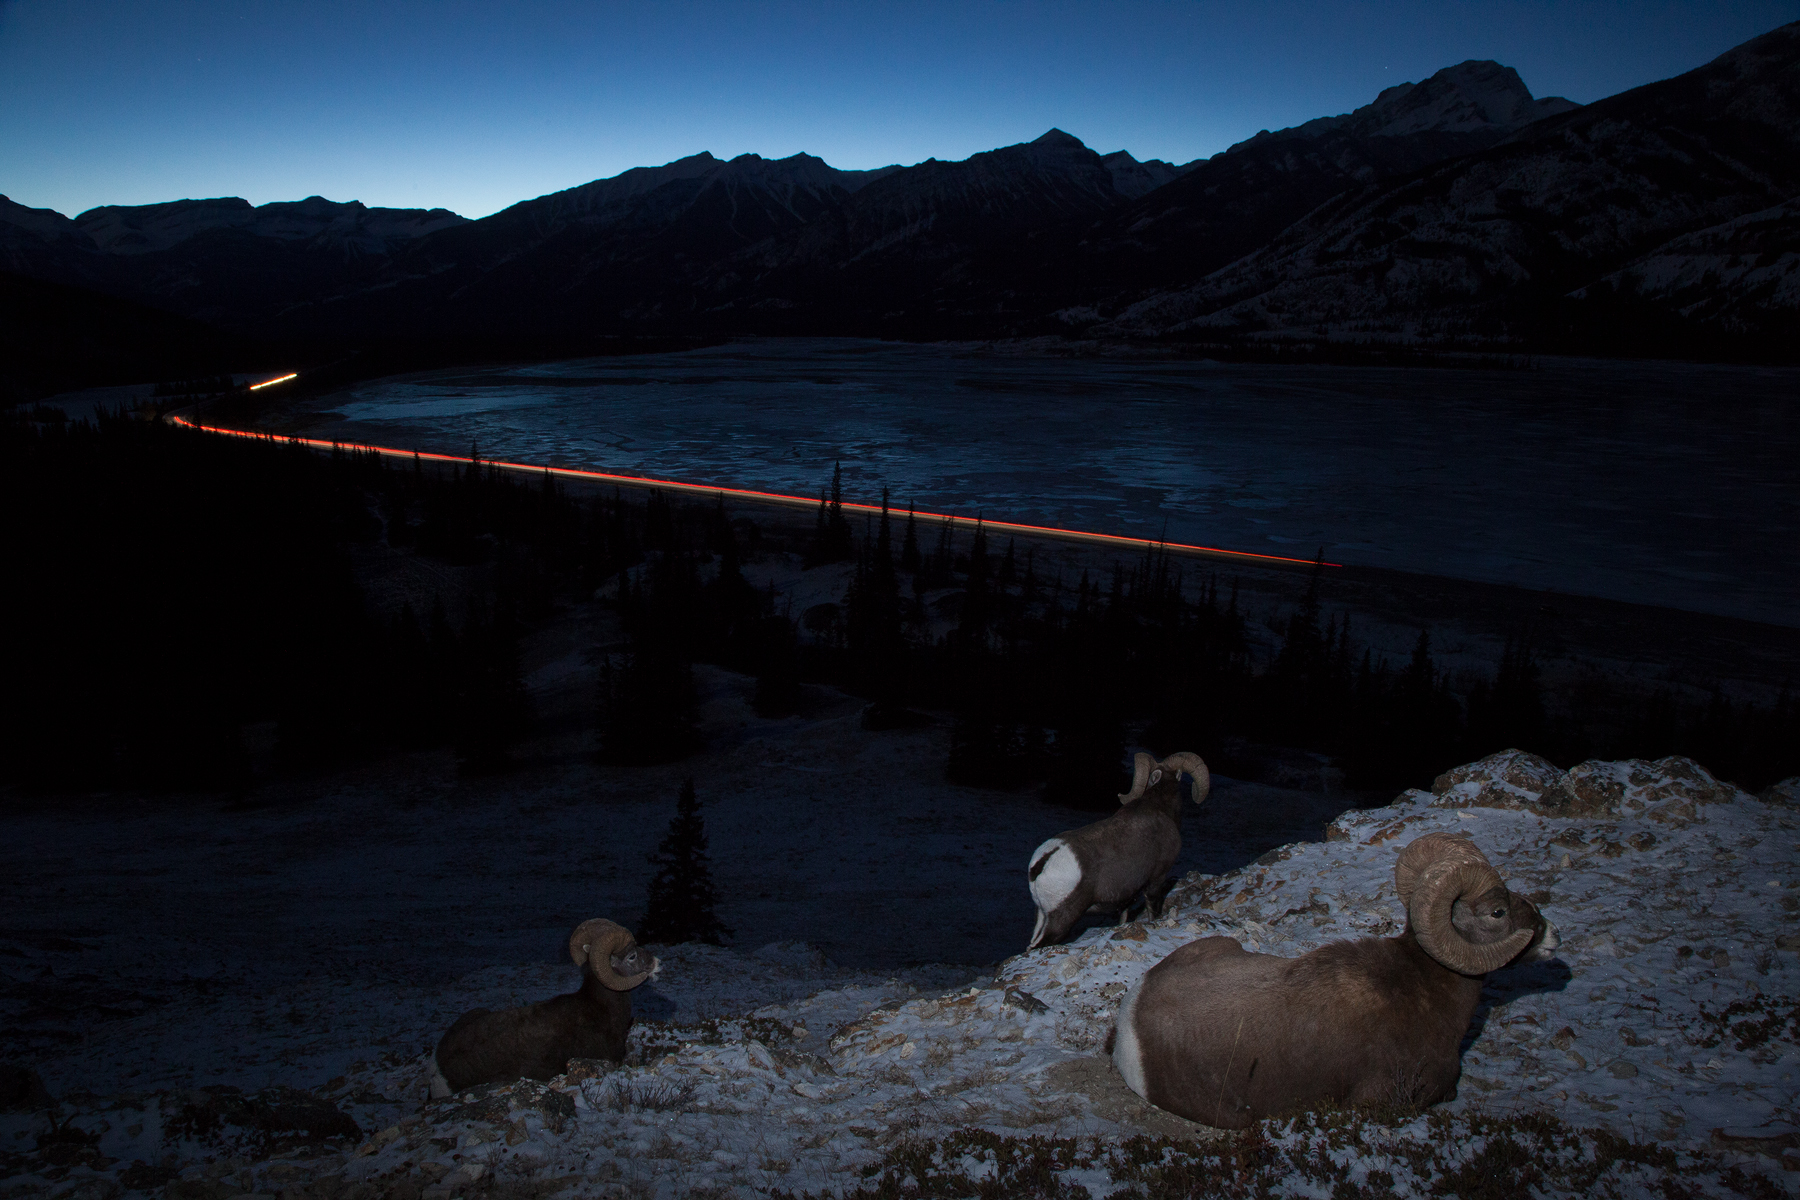 Rocky Mountain Bighorn Sheep bed down for the night above the highway in Jasper National Park, Canada.  Image ©Connor Stefanison